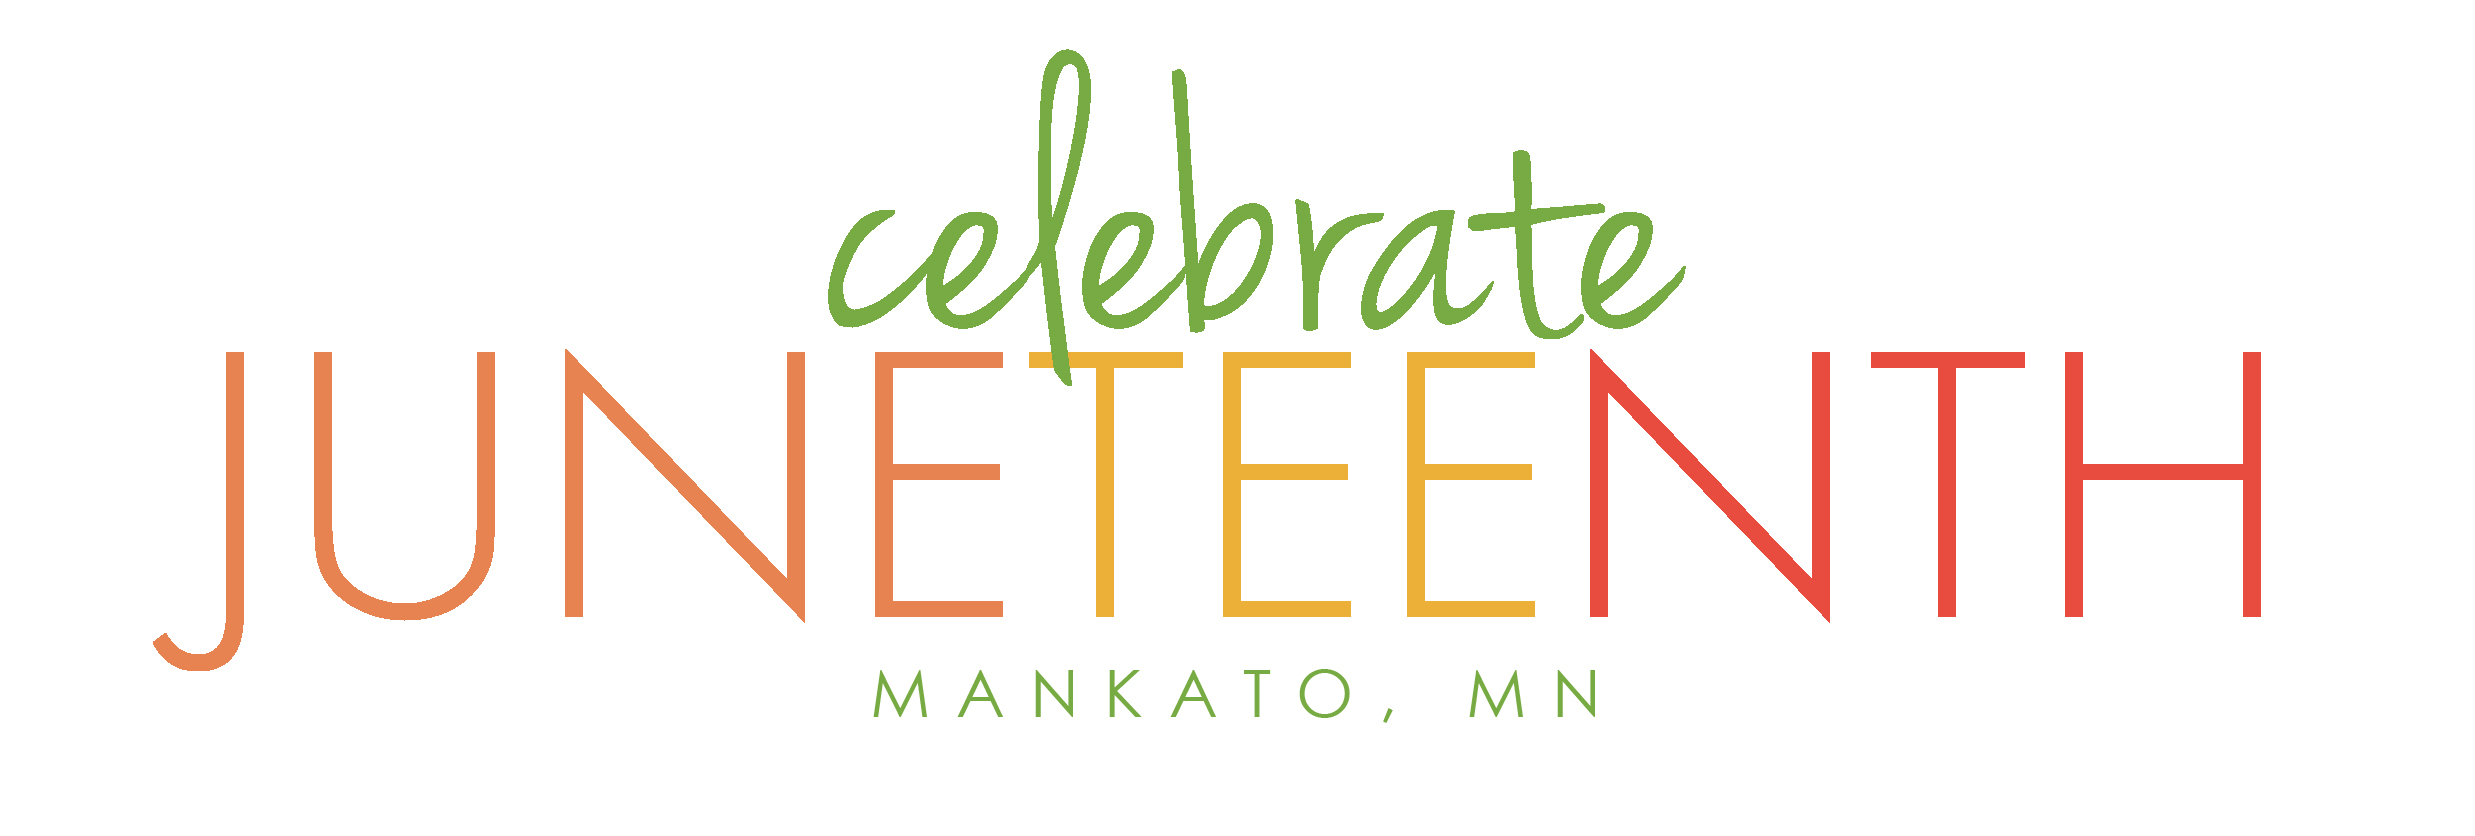 Manktao Juneteenth Celebration 2019